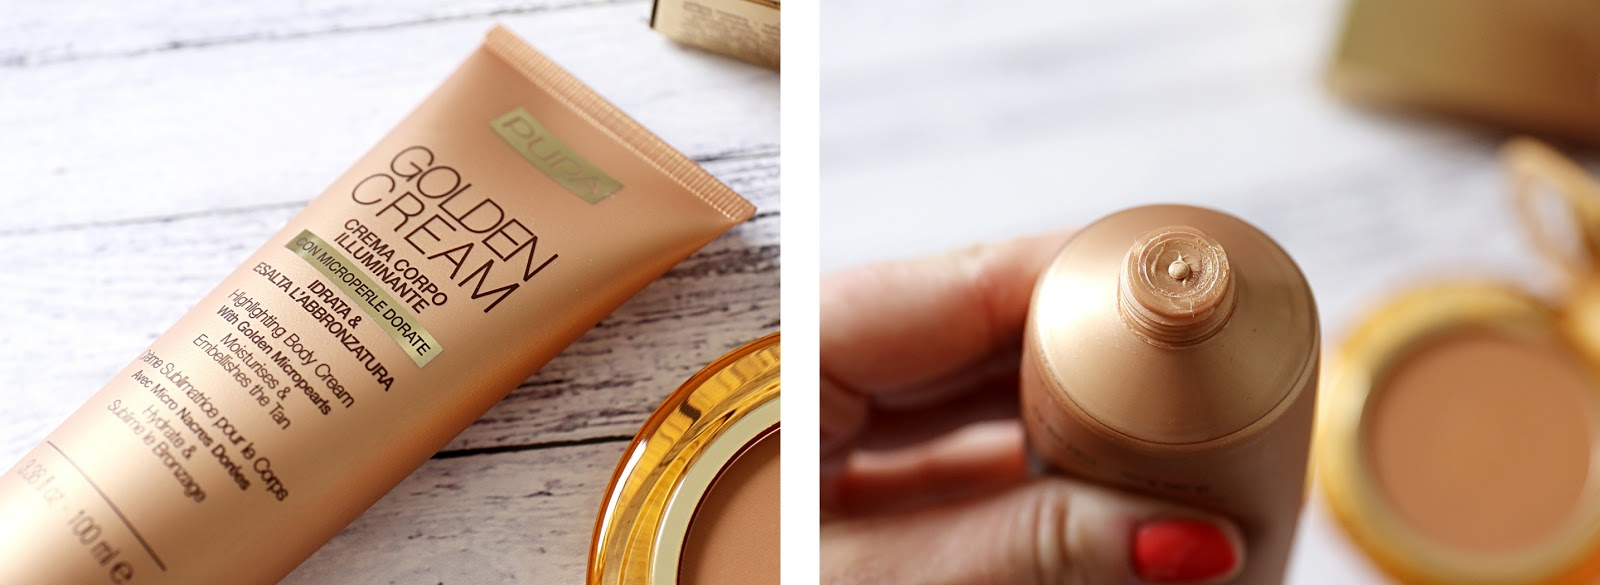 Pupa Highlighting Body Cream